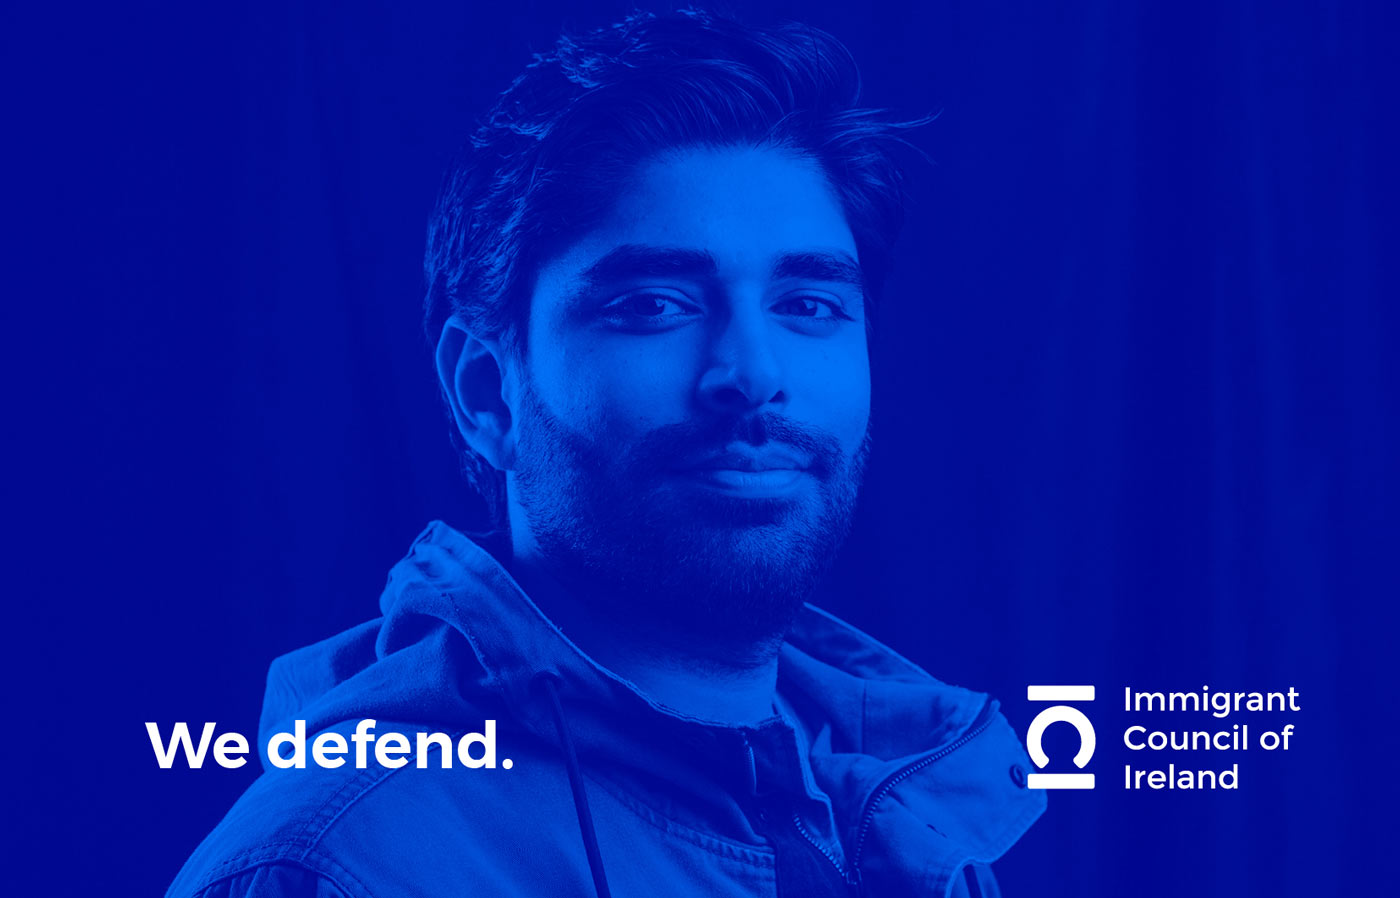 Immigrant Council of Ireland photography production, brand development, and logo design with image of young man in shades of blue.